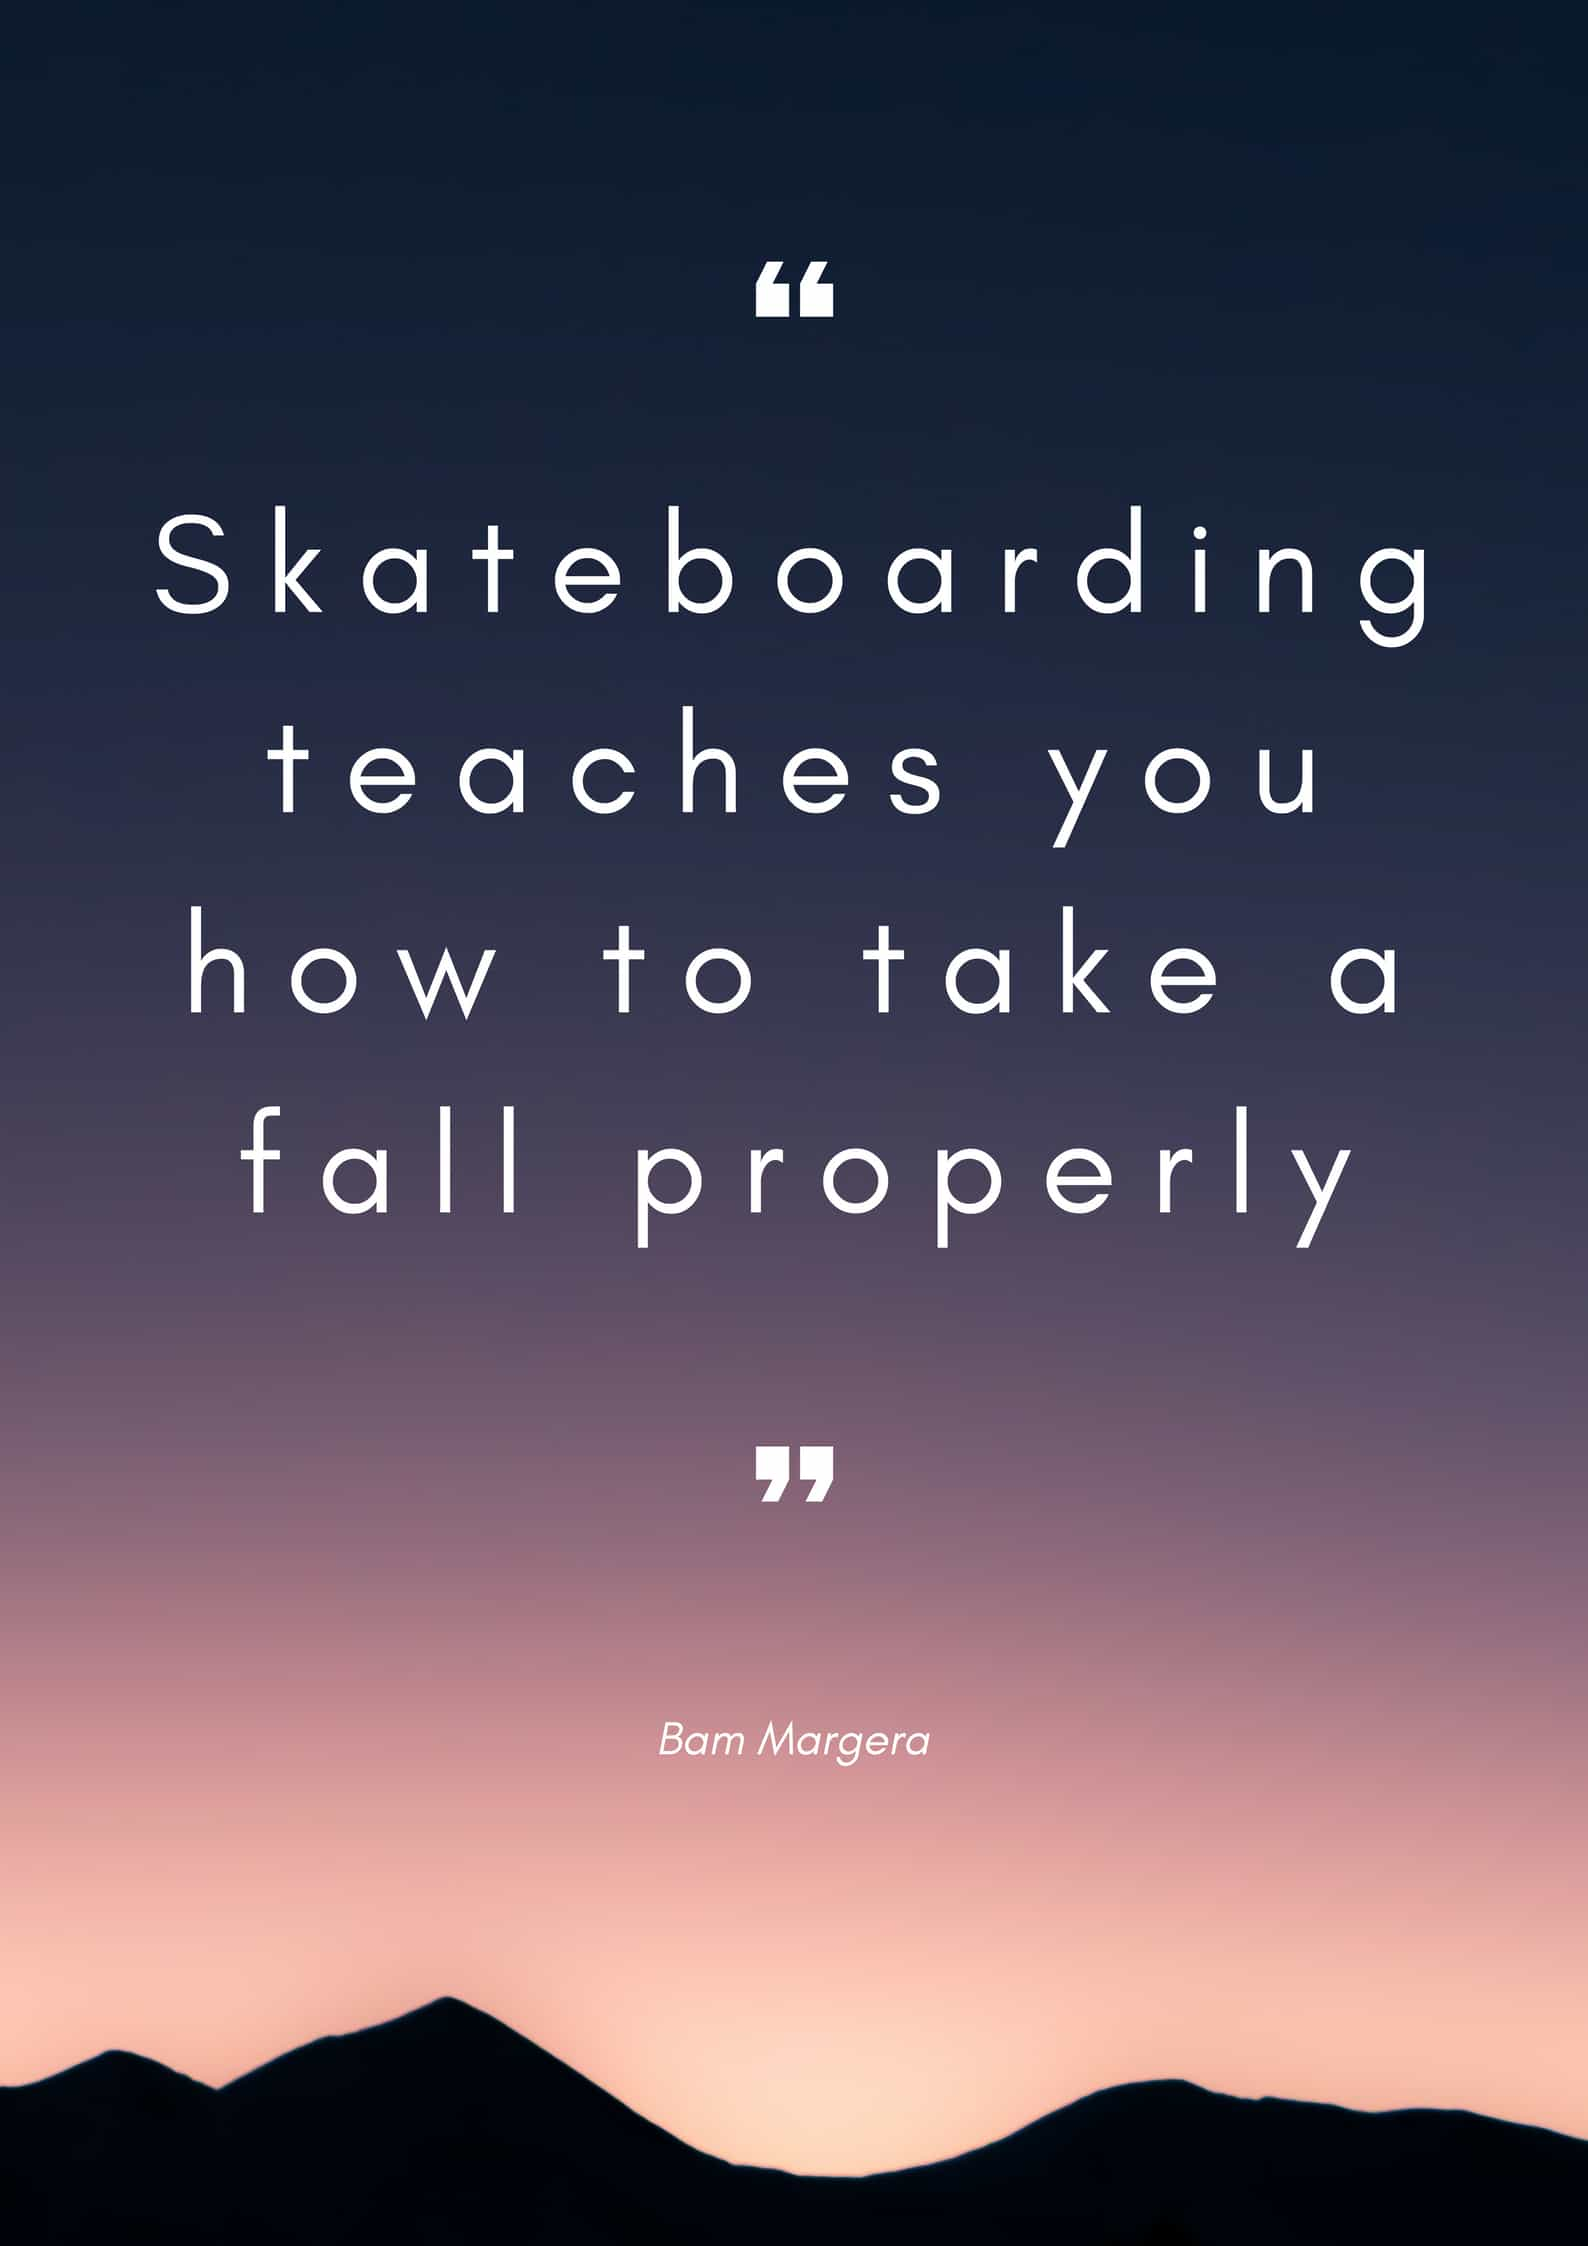 Skateboarding teaches you how to take a fall properly. Margera